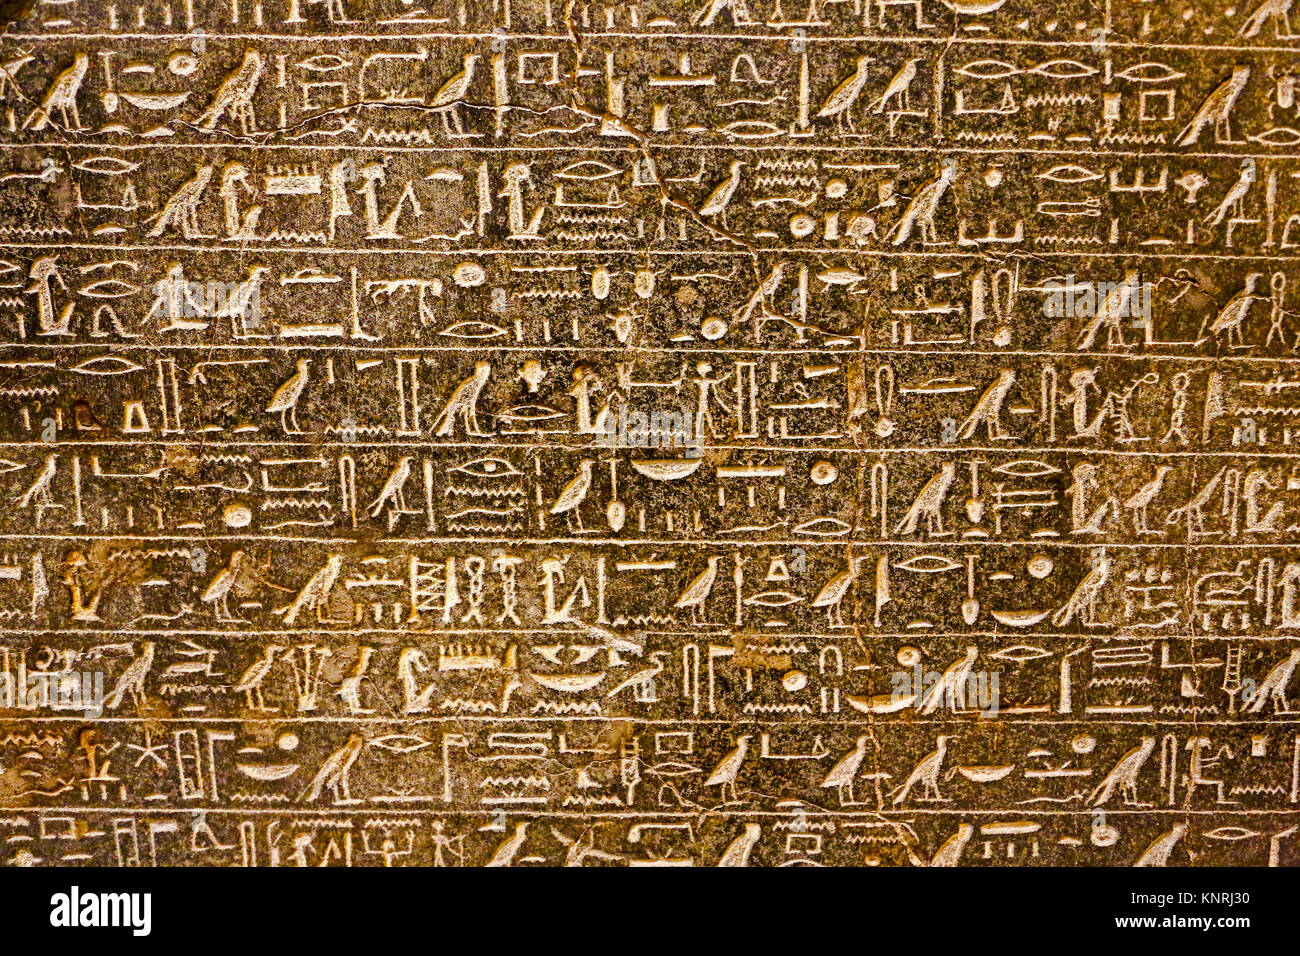 How many hieroglyphs are in the Egyptian letter